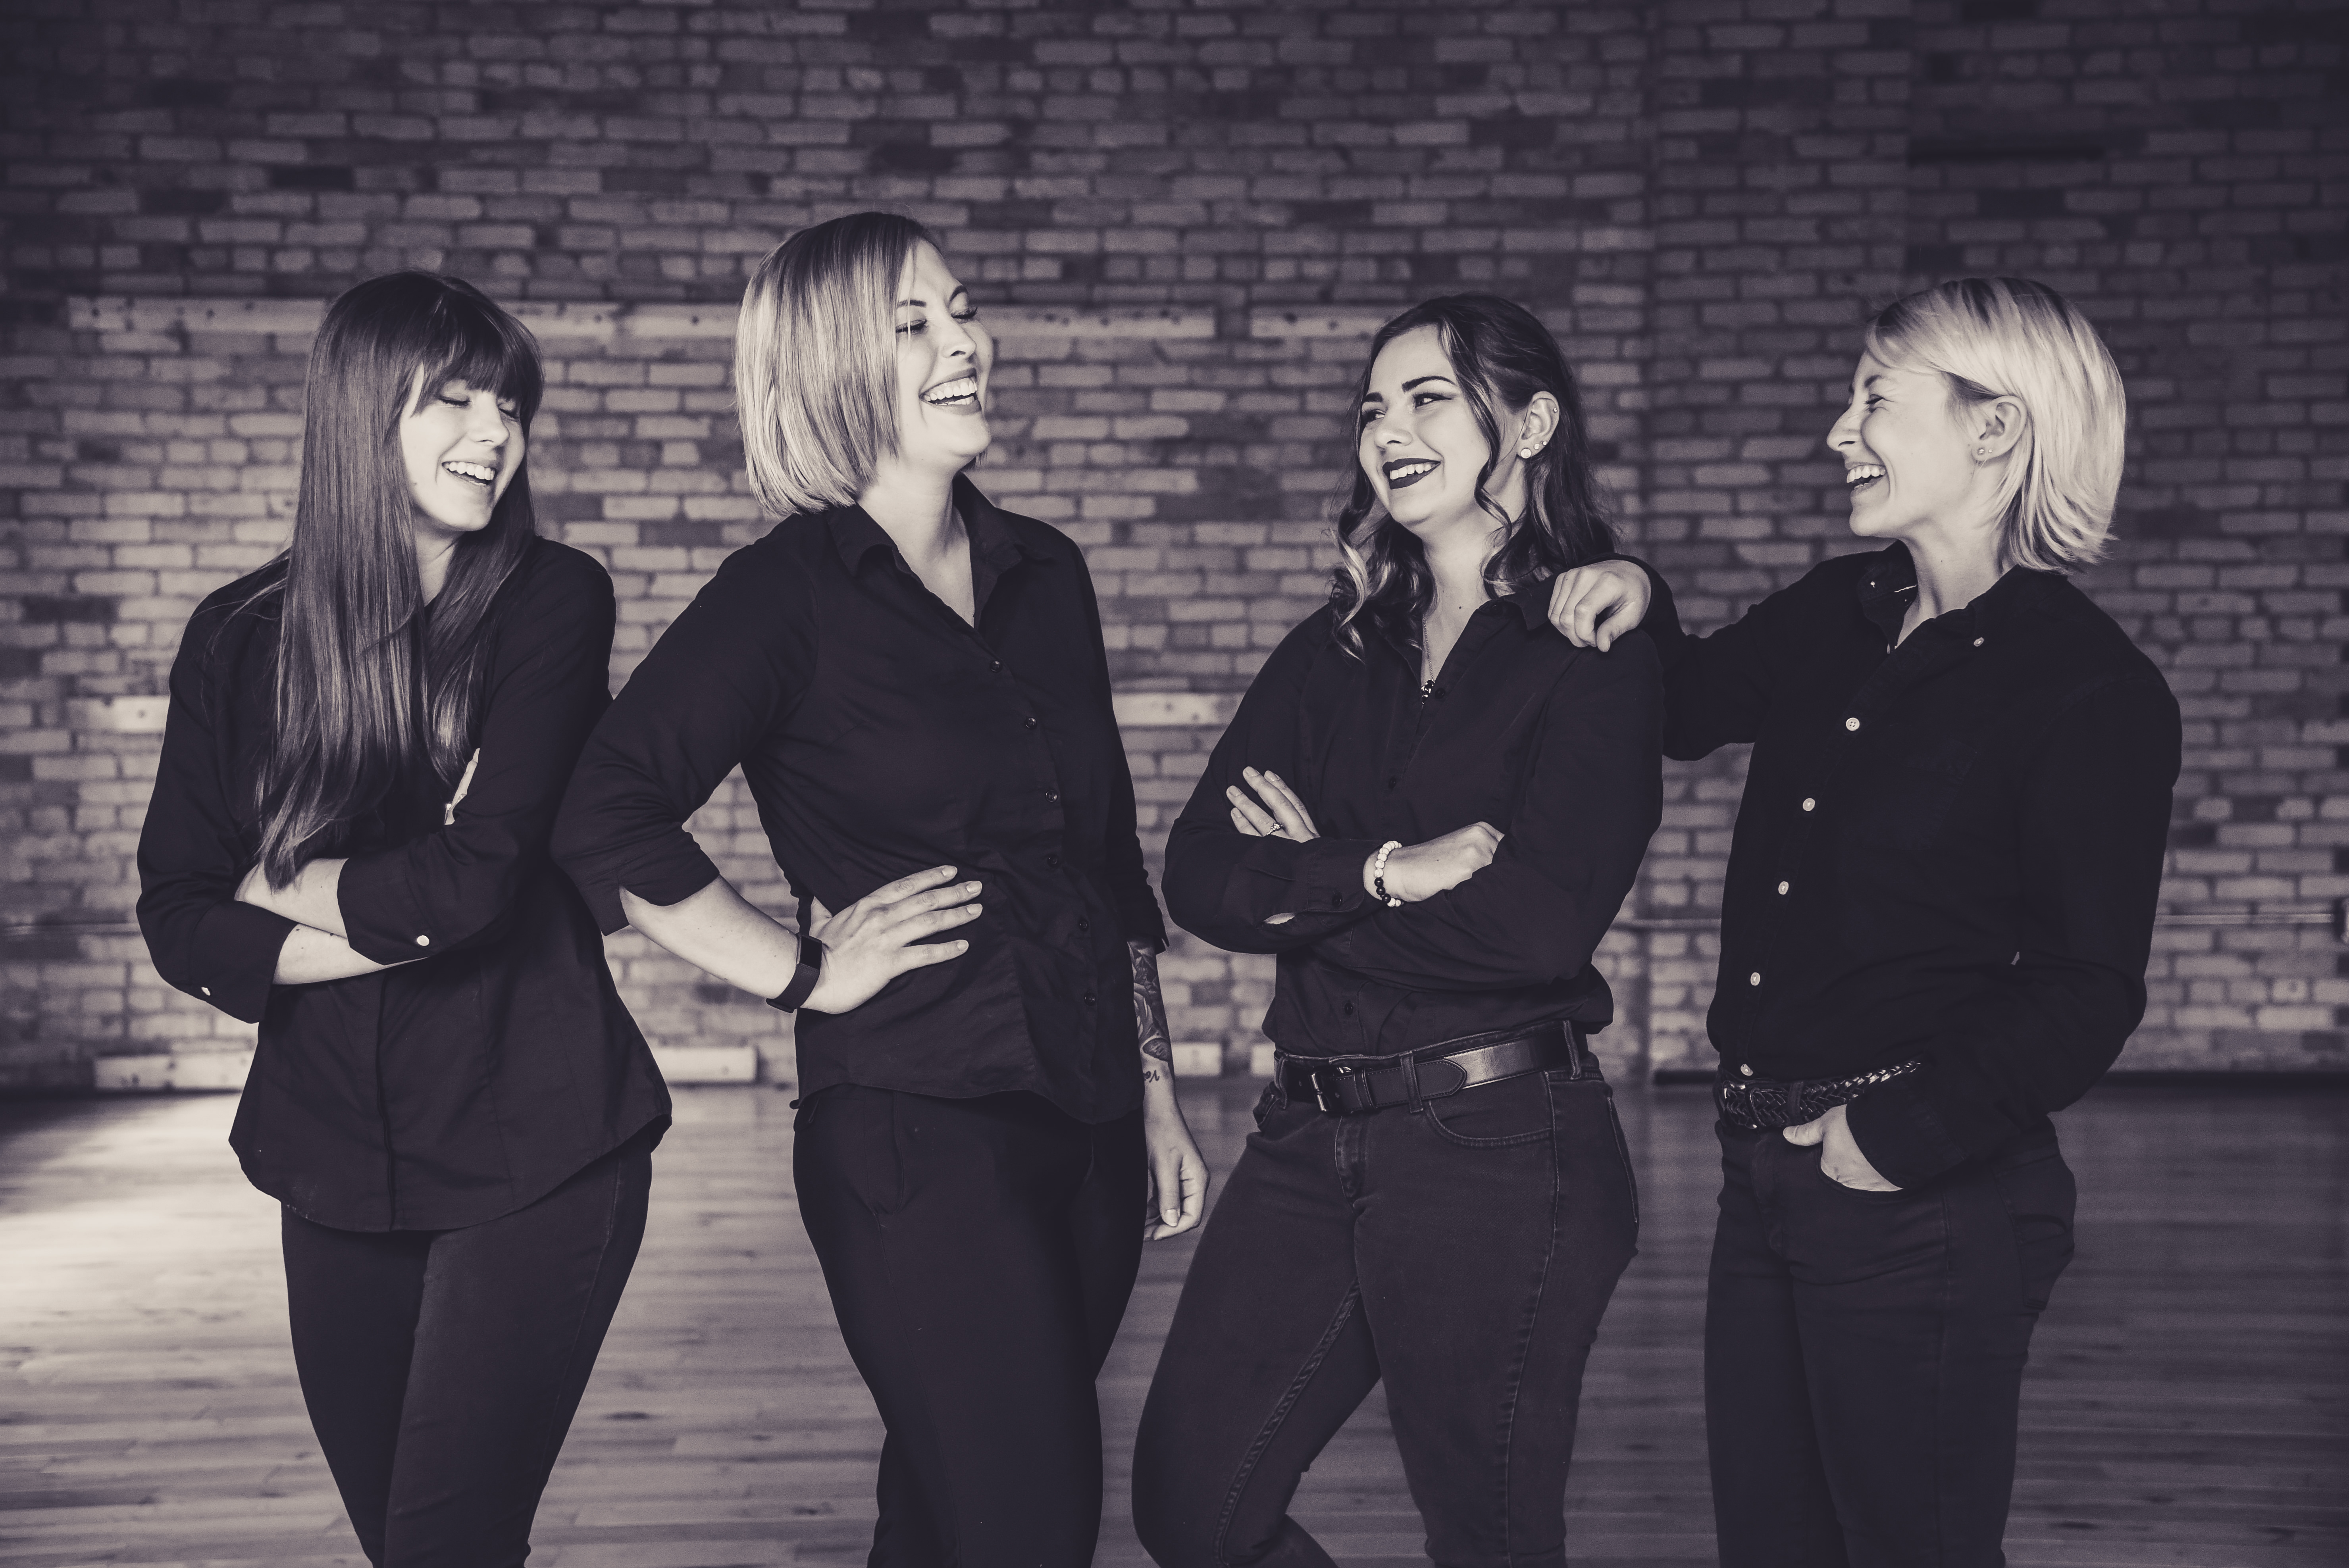 image of four women in black clothing in a brick building